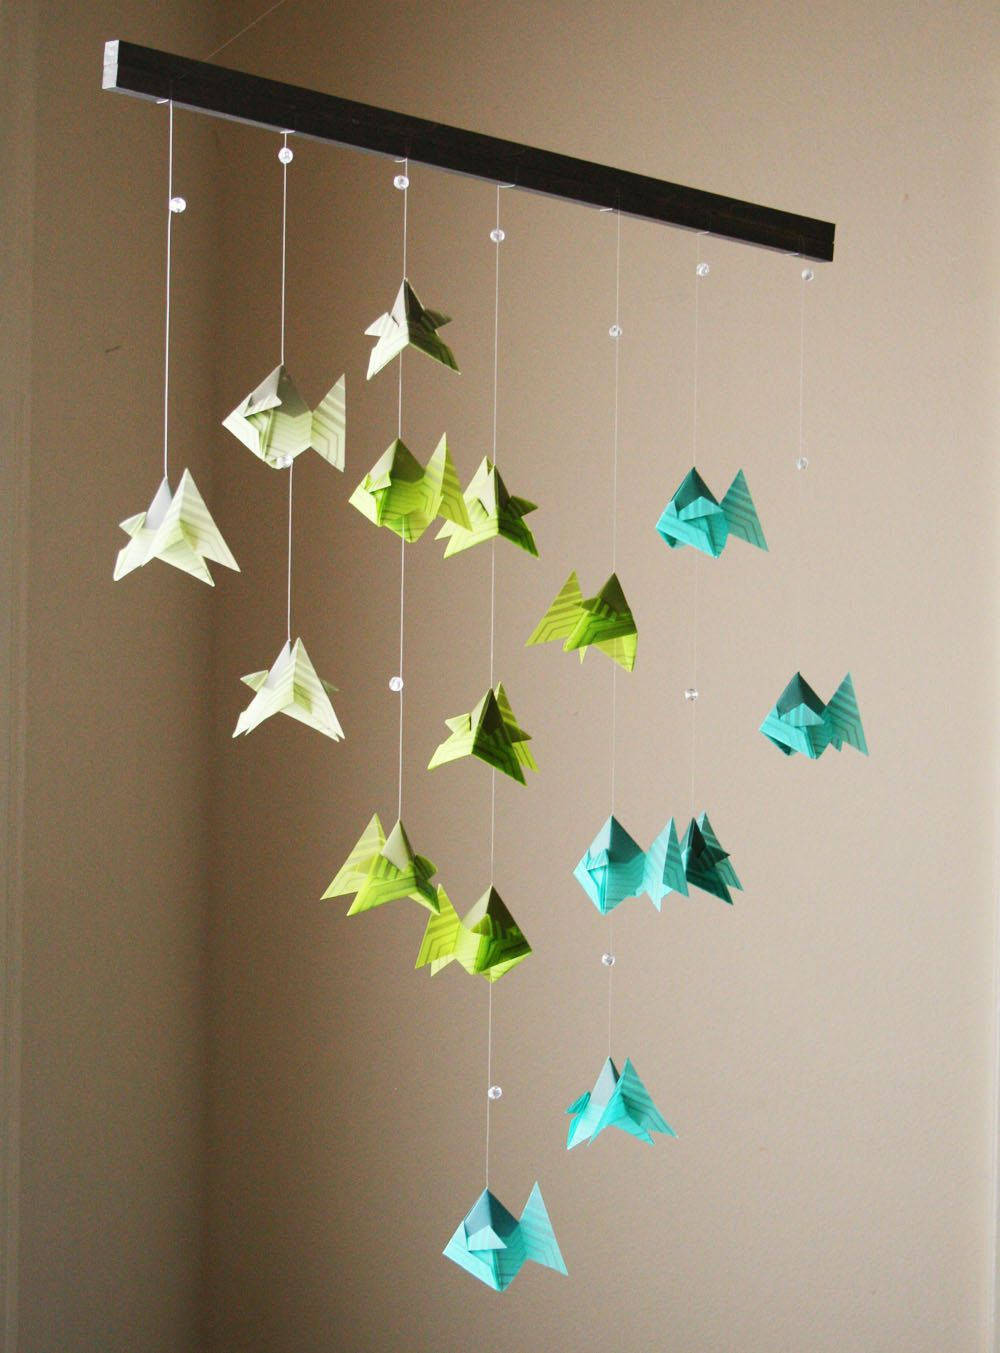 Origami Mobile School Of Caribbean Fish Hanging Decor Halloween Diagram Paper Sculpture Modern Via Etsy